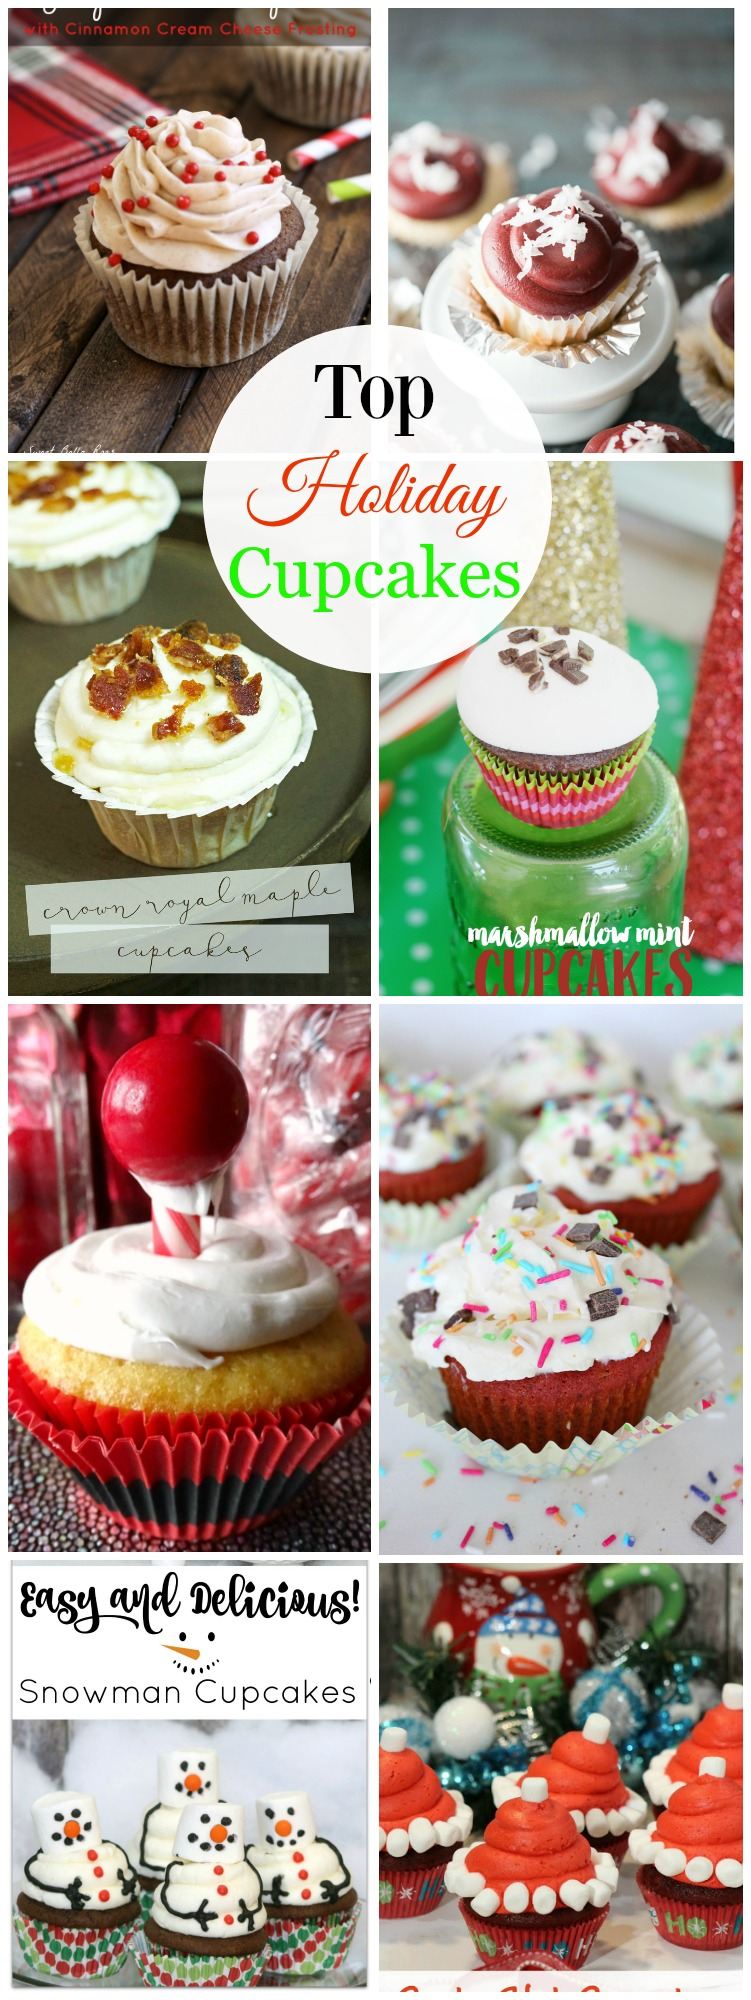 Top Holiday Cupcakes